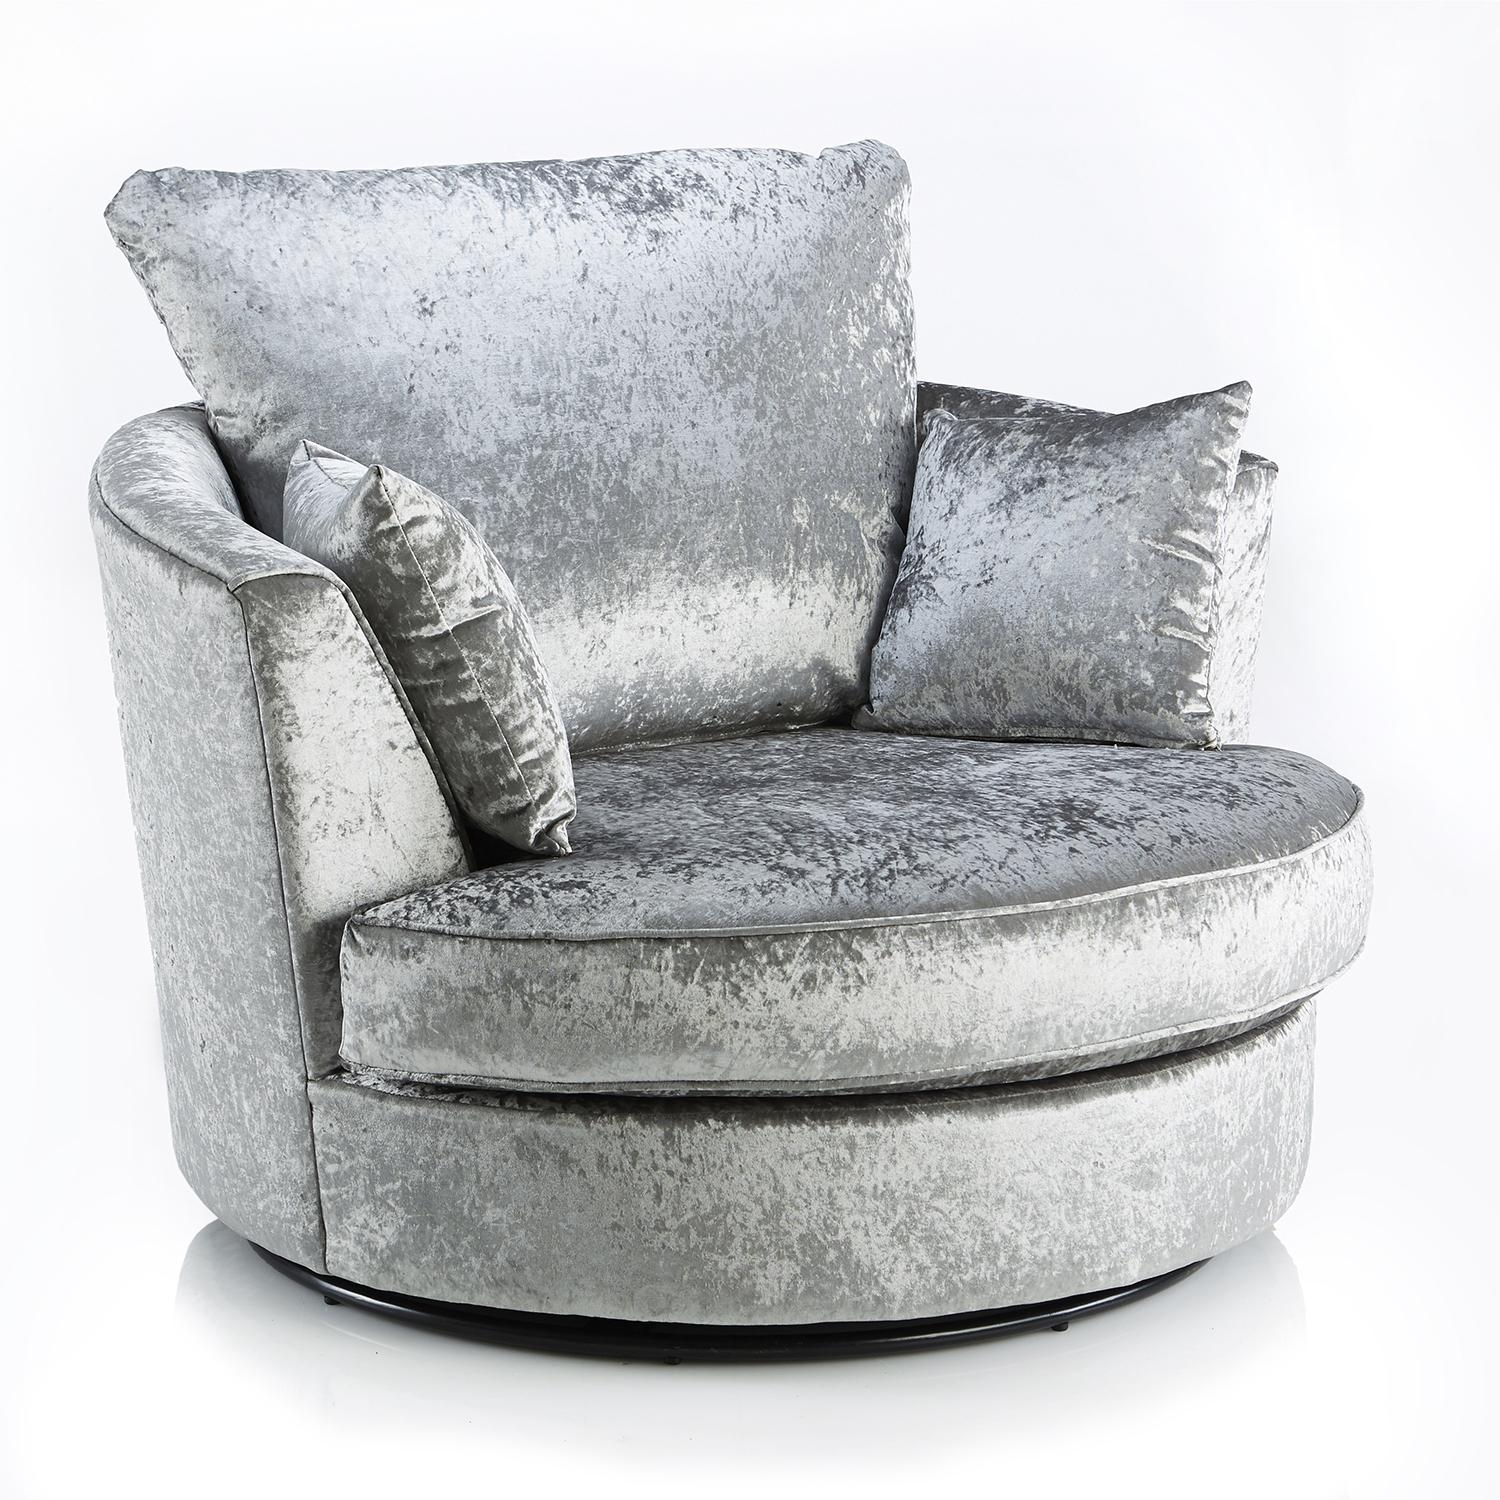 Crushed Velvet Furniture | Sofas, Beds, Chairs, Cushions With Sofa With Swivel Chair (View 19 of 20)